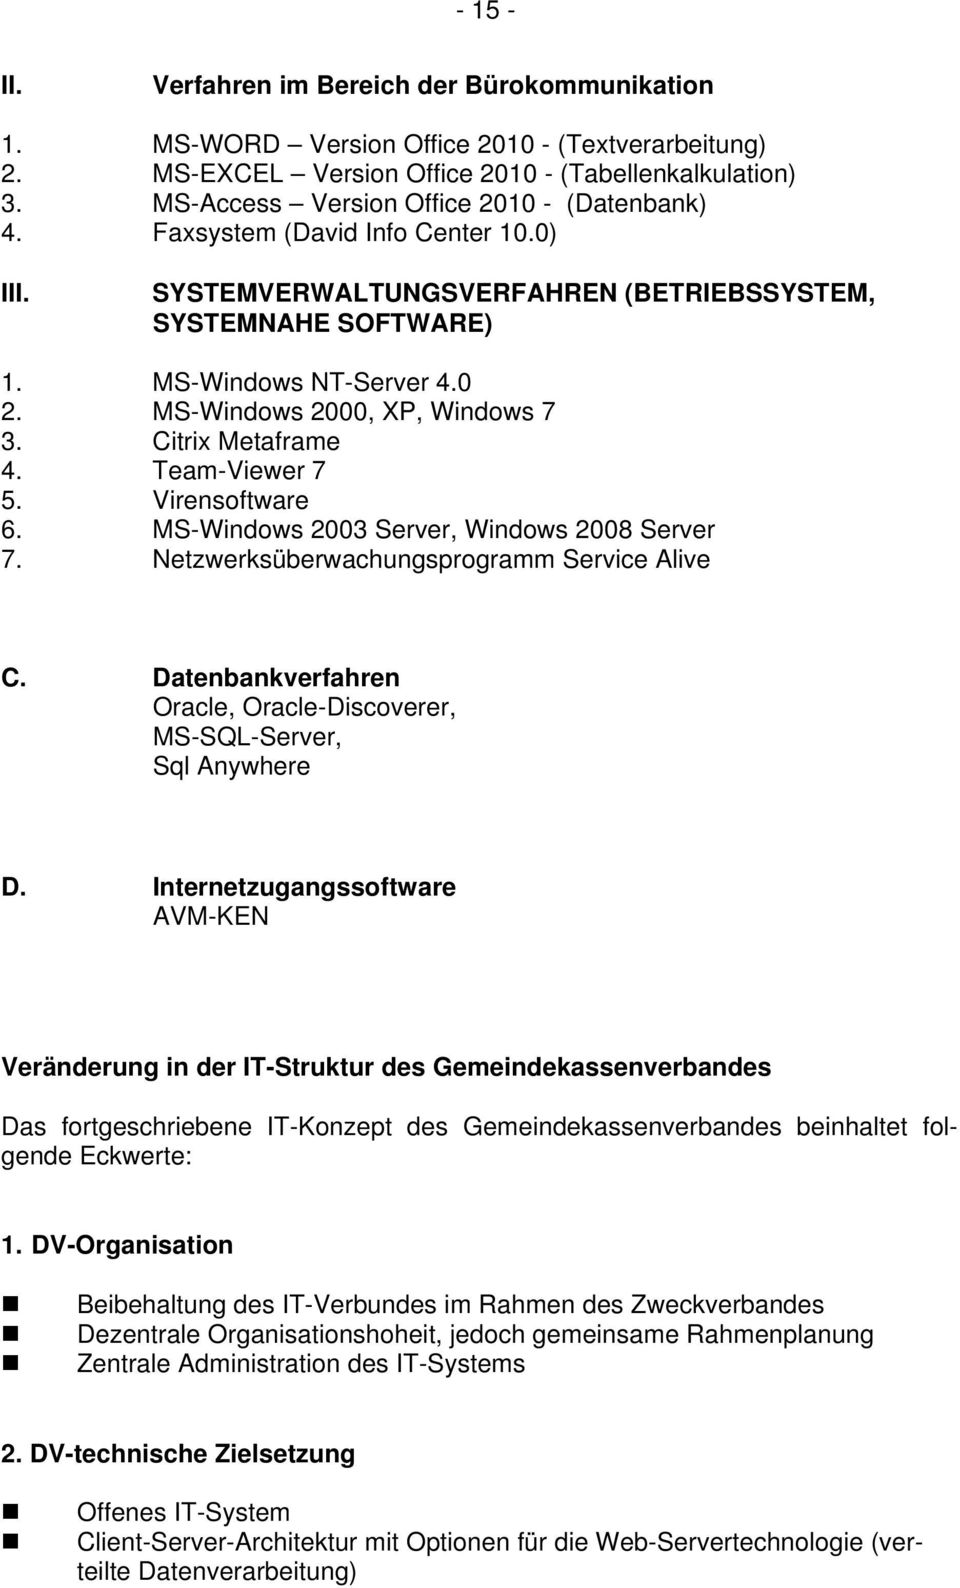 MS-Windows 2000, XP, Windows 7 3. Citrix Metaframe 4. Team-Viewer 7 5. Virensoftware 6. MS-Windows 2003 Server, Windows 2008 Server 7. Netzwerksüberwachungsprogramm Service Alive C.